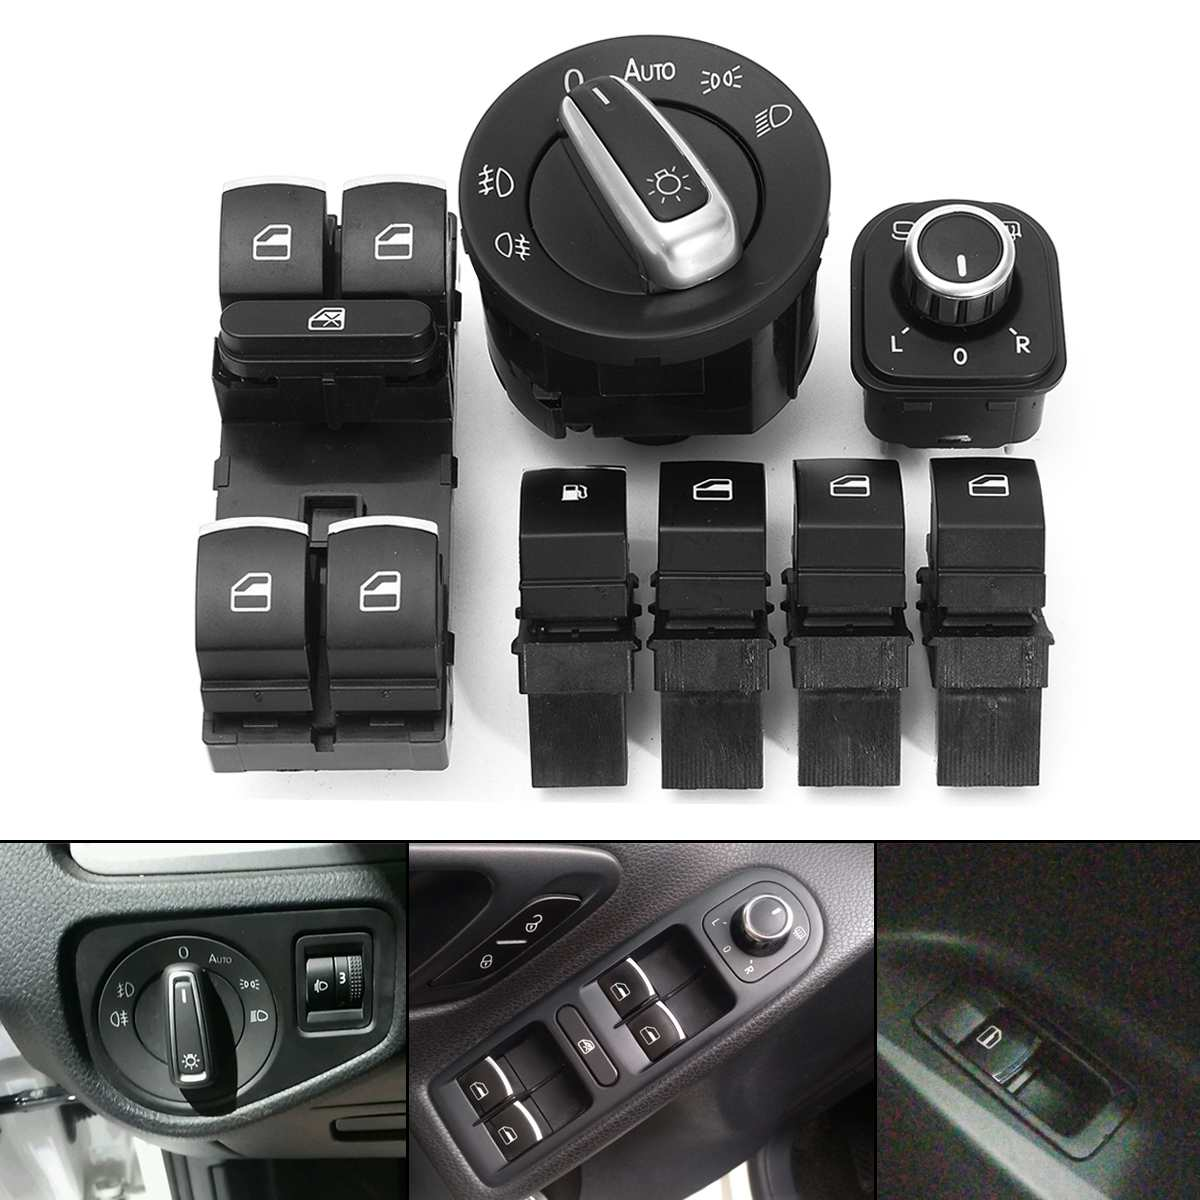 7pcs Car <font><b>Headlight</b></font> Mirror Window Switches 5ND 959 565A 5ND 959 857 For <font><b>VW</b></font> <font><b>Golf</b></font> MK5 6 7 Jetta <font><b>MK3</b></font> 4 Passat B6 B7 image